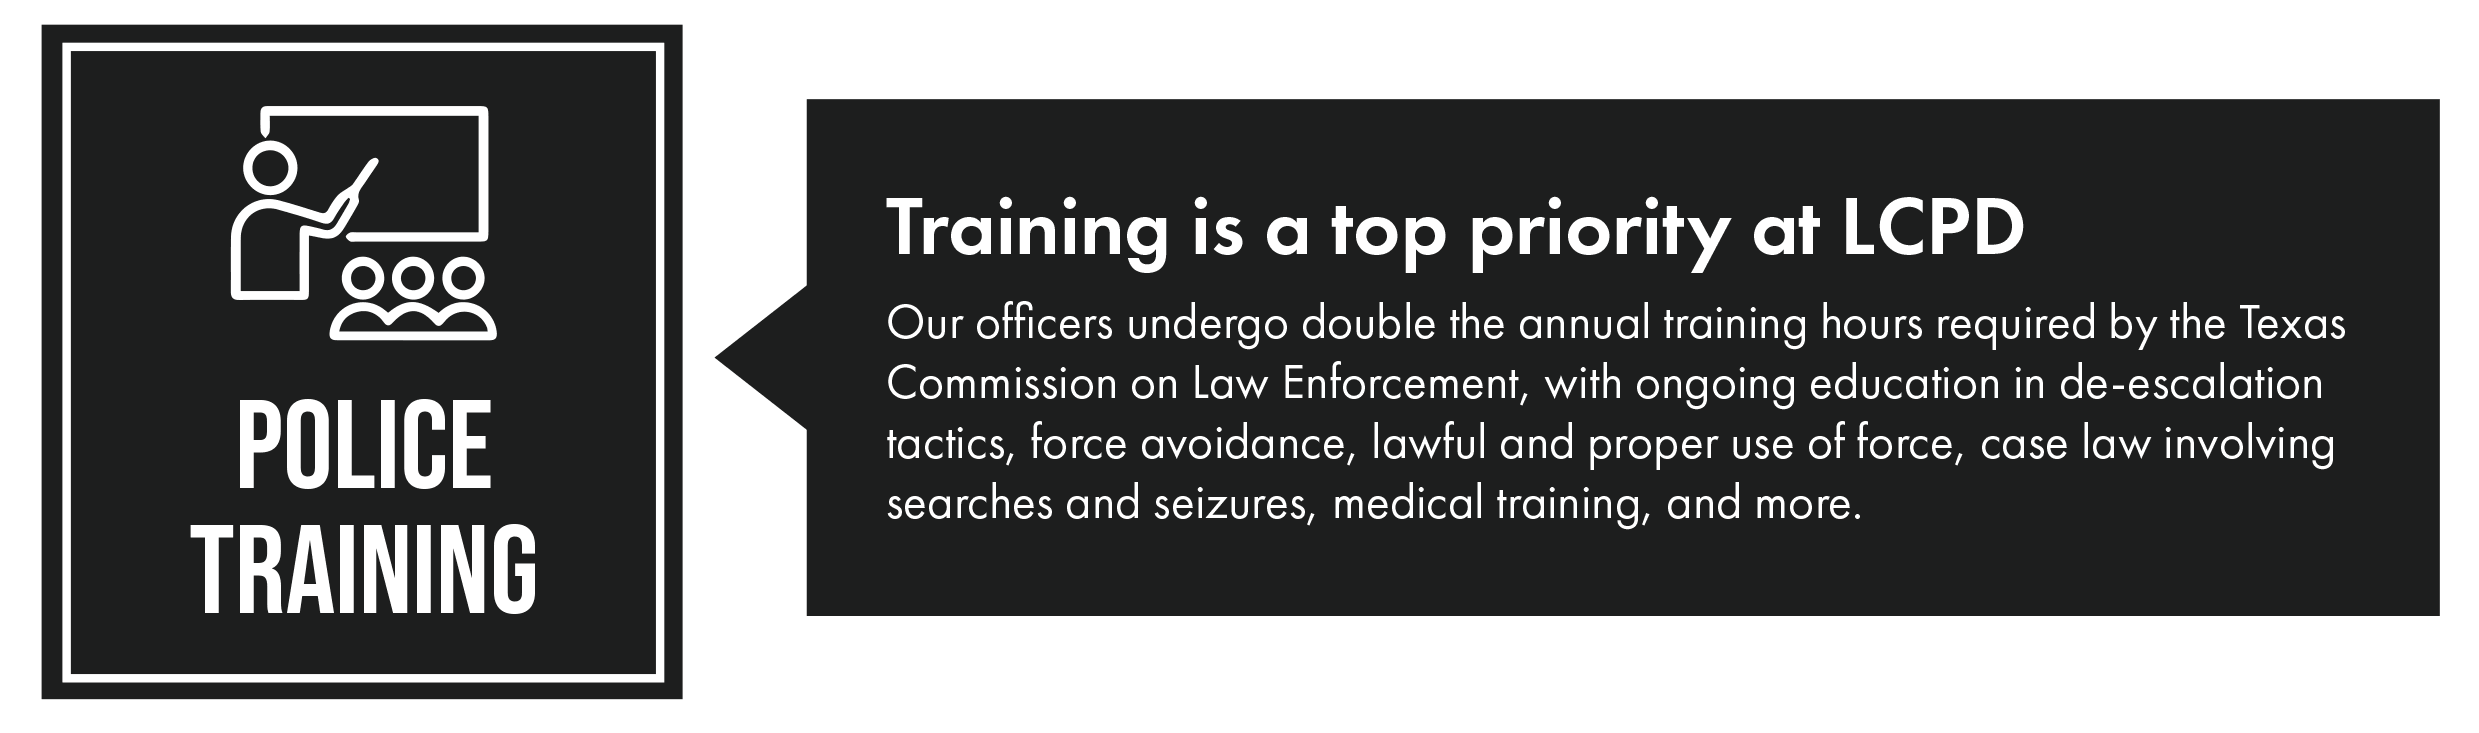 Police training infographic